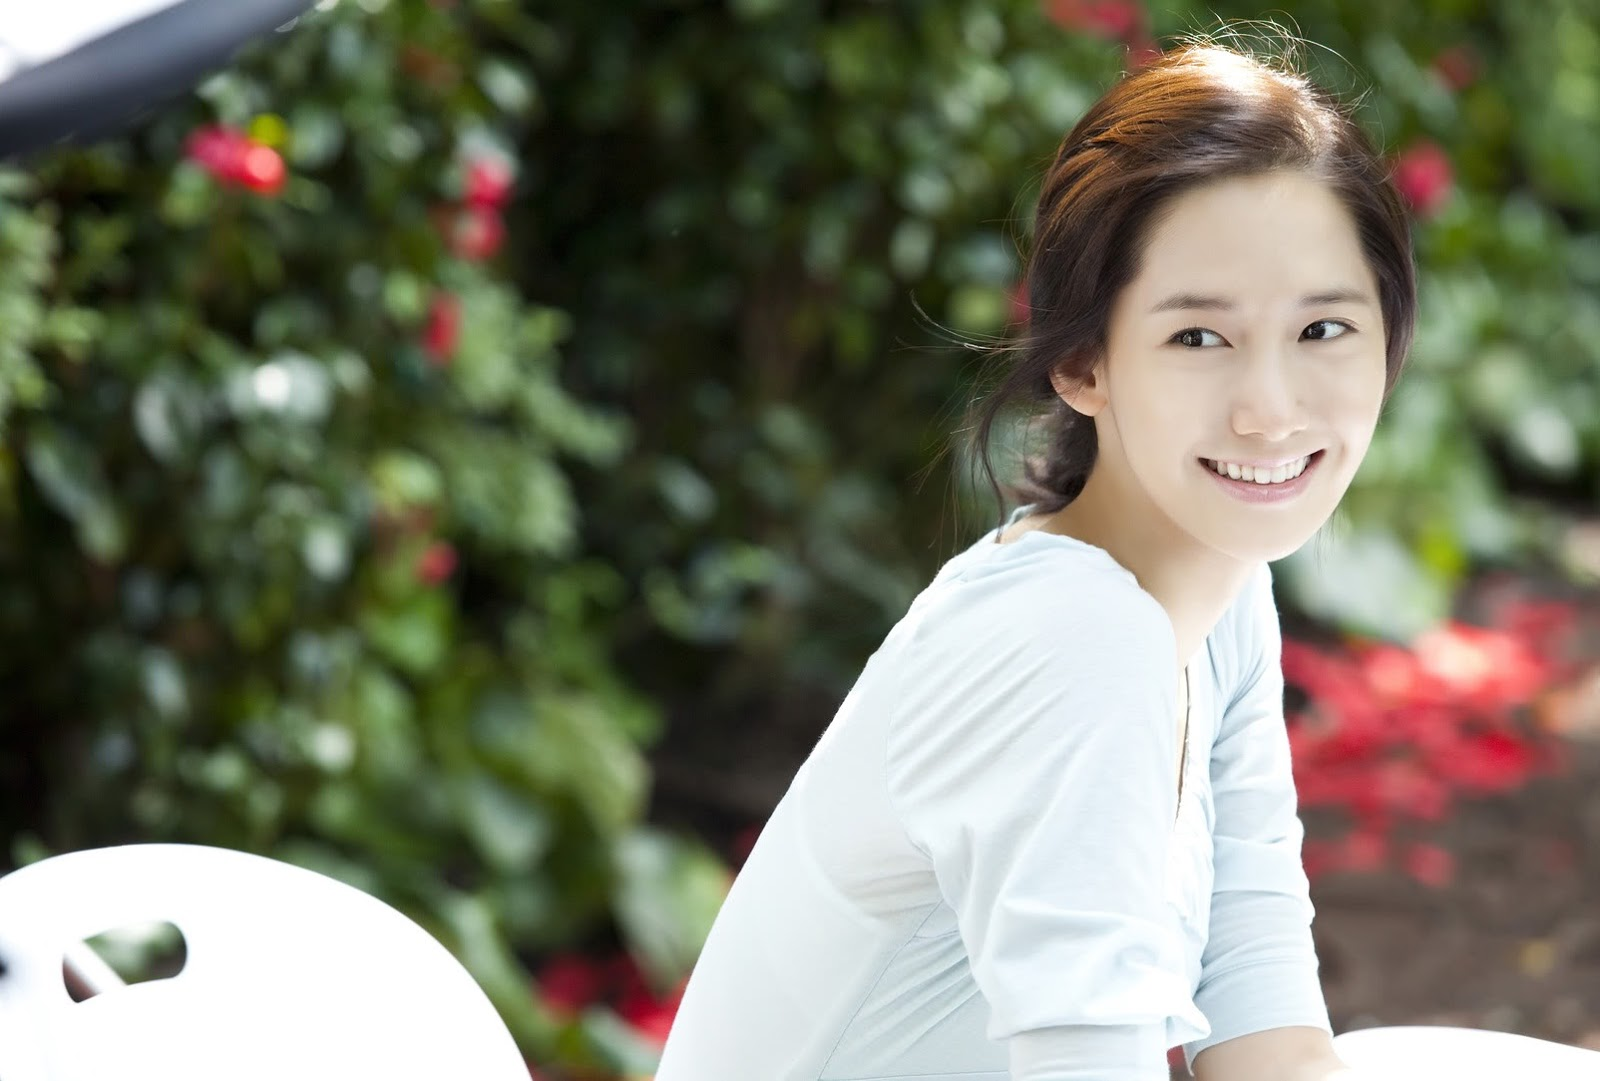 wallpaper hd 3 snsd yoona innisfree wallpaper hd 4 1600x1081